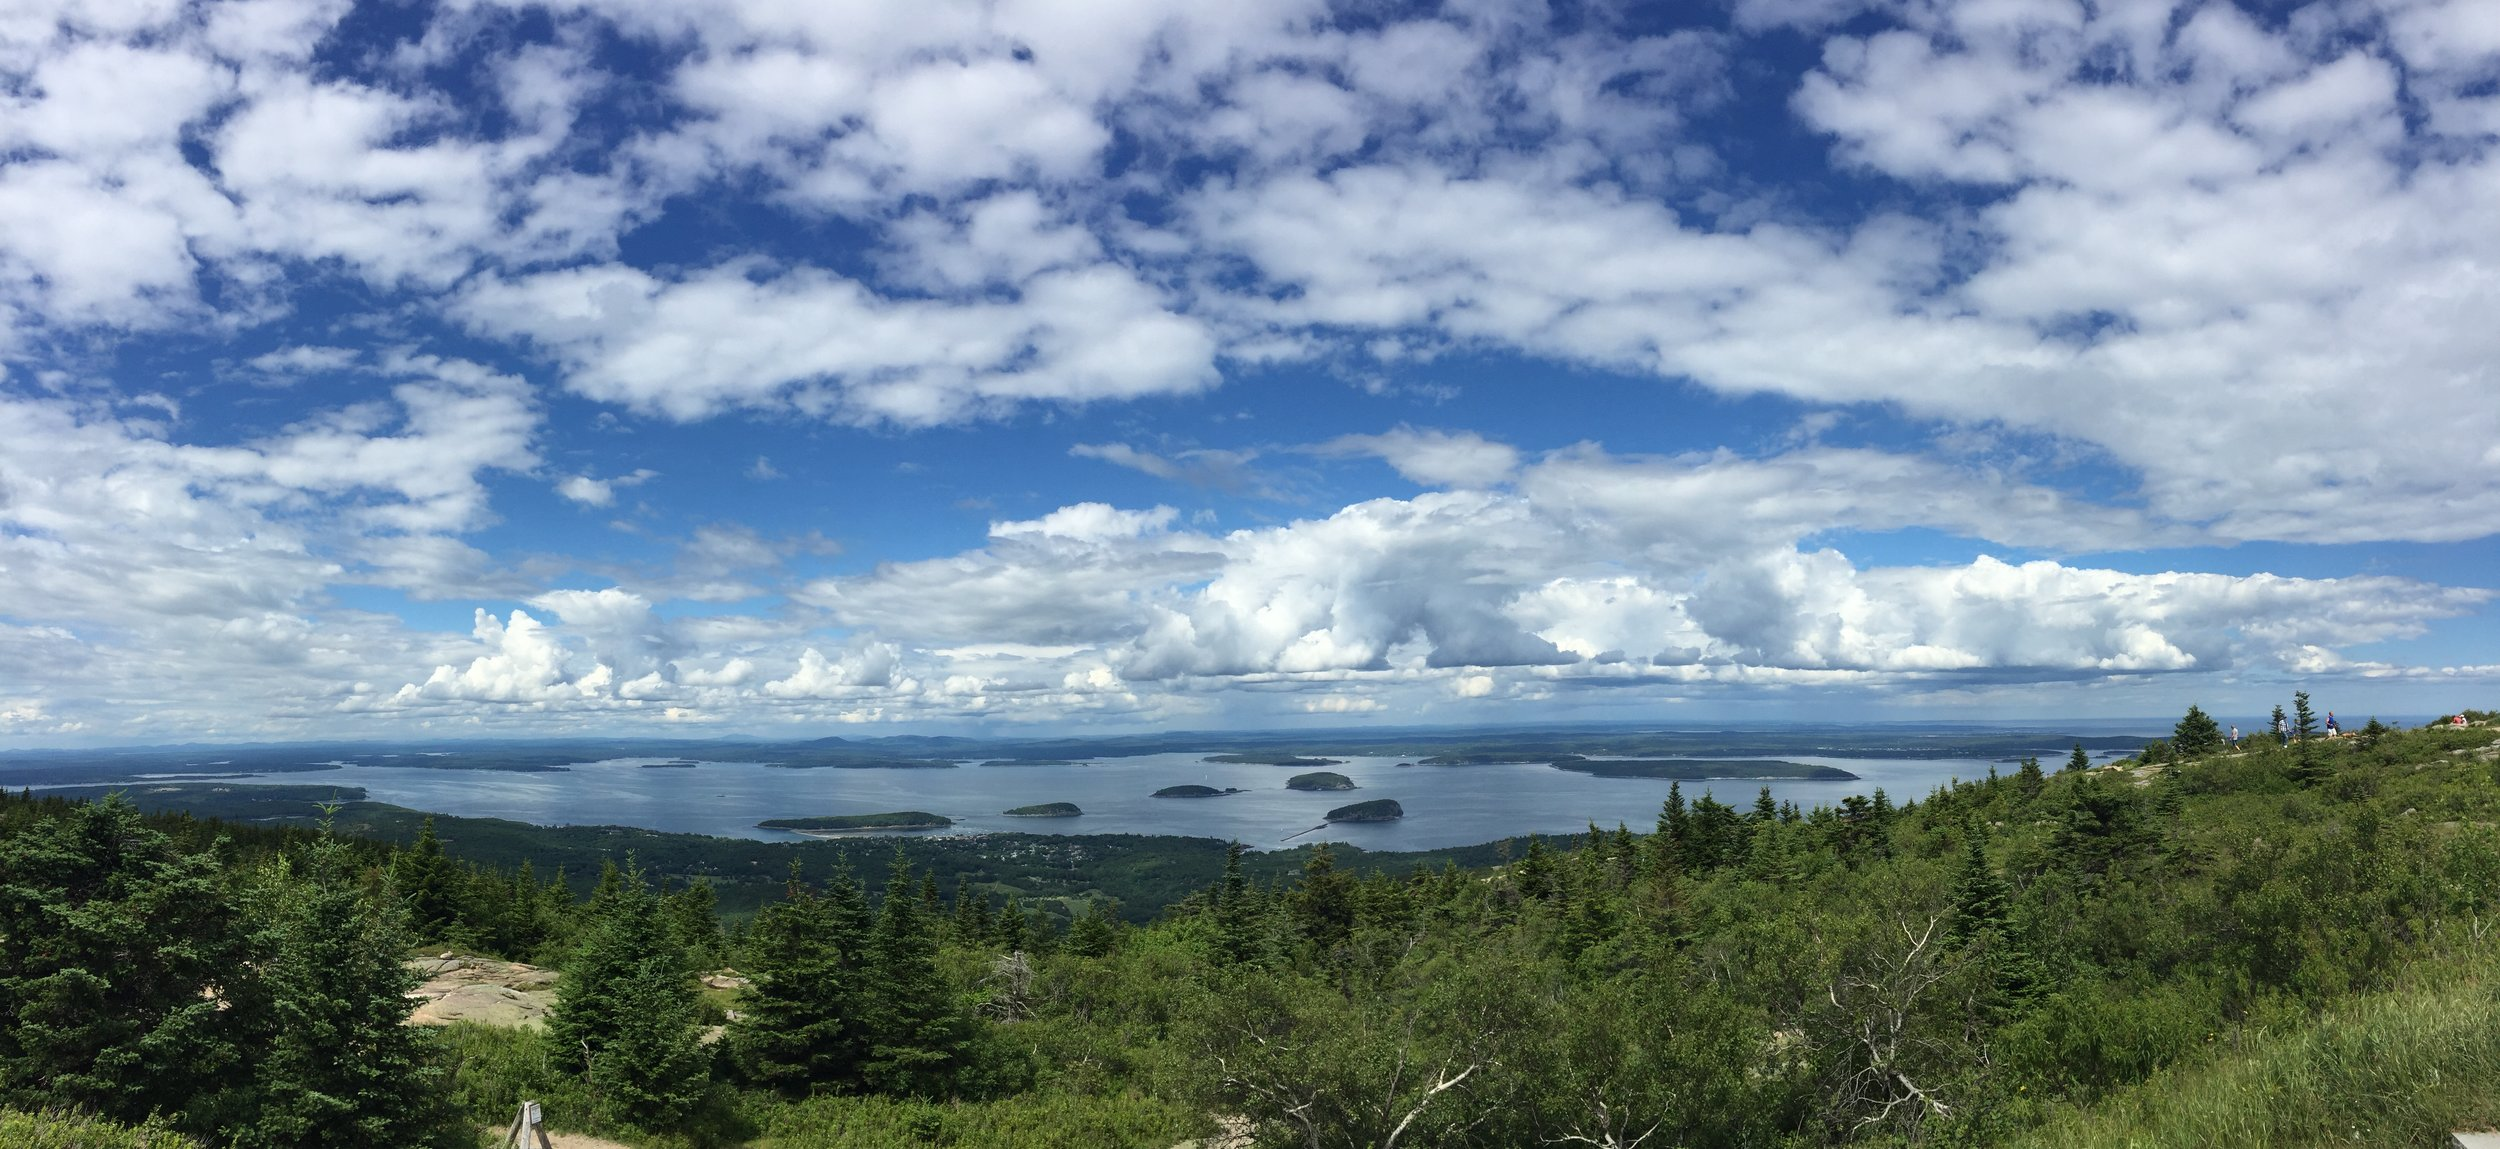 This photo displays the view from atop Cadillac Mountain in Acadia National Park in Bar Harbor, Maine. Peering across the Frenchman Bay, spotted with many little islands, we seemed to be standing above the clouds.